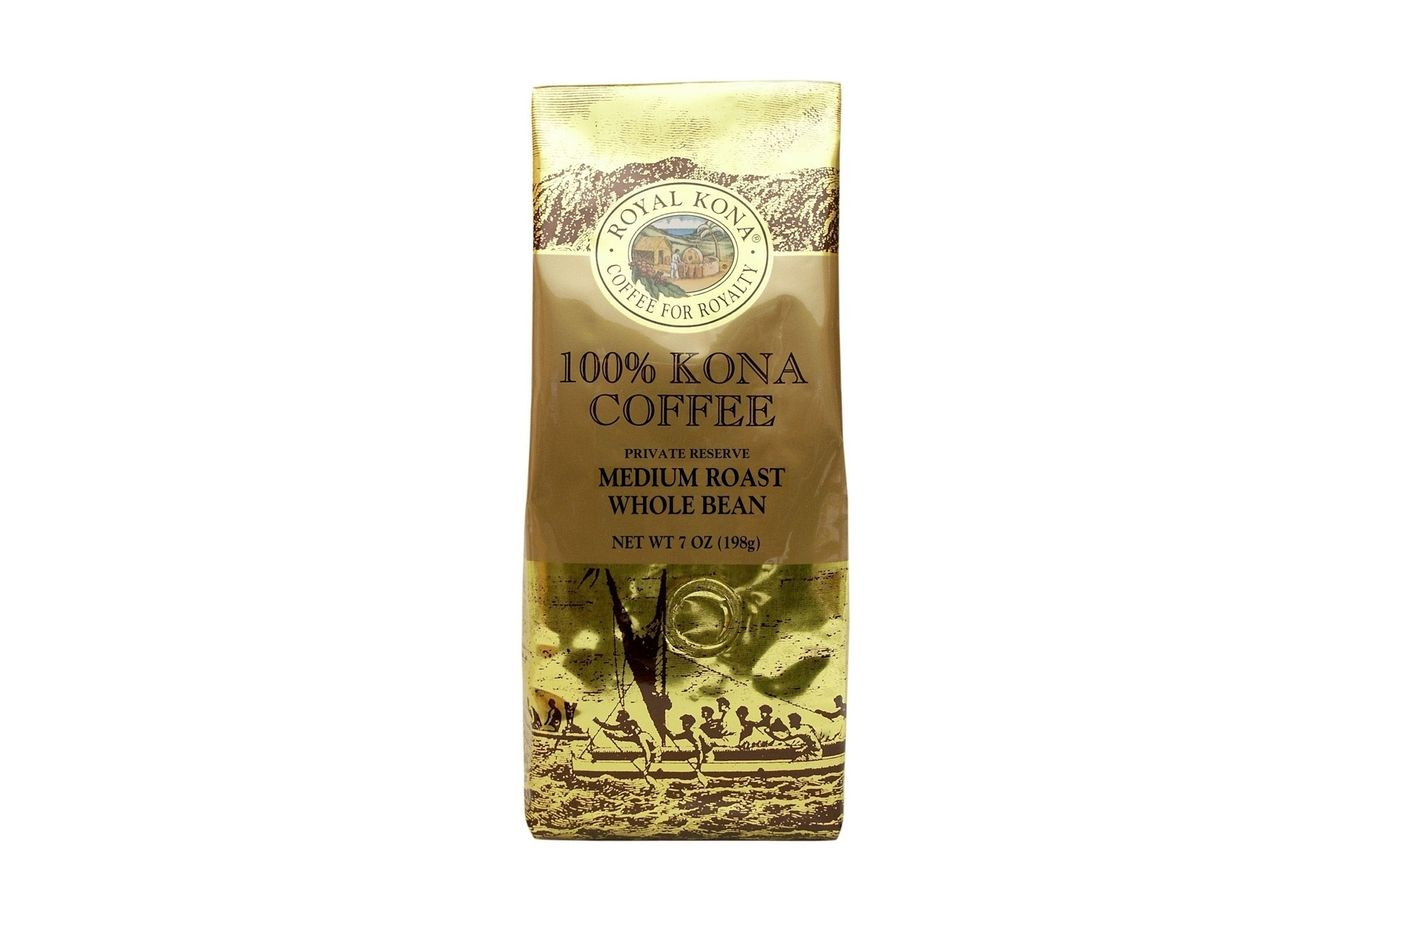 Royal Kona Private Reserve Medium Roast